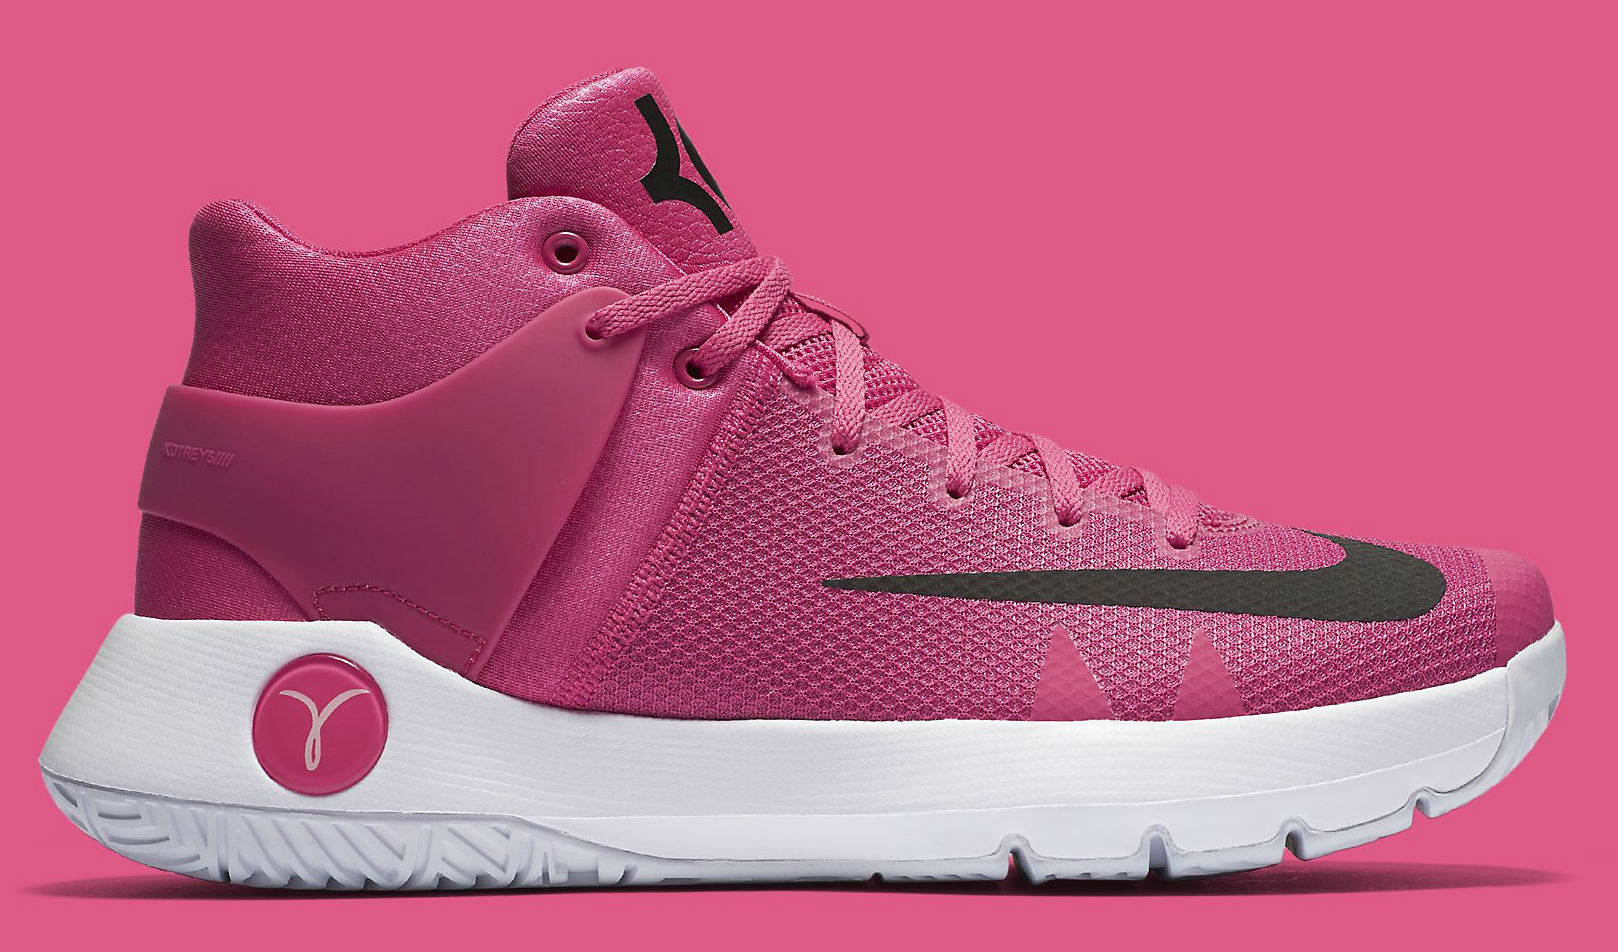 reputable site 53056 f15bc Nike KD Trey 5 IV Think Pink Breast Cancer Kay Yow 844573 ...